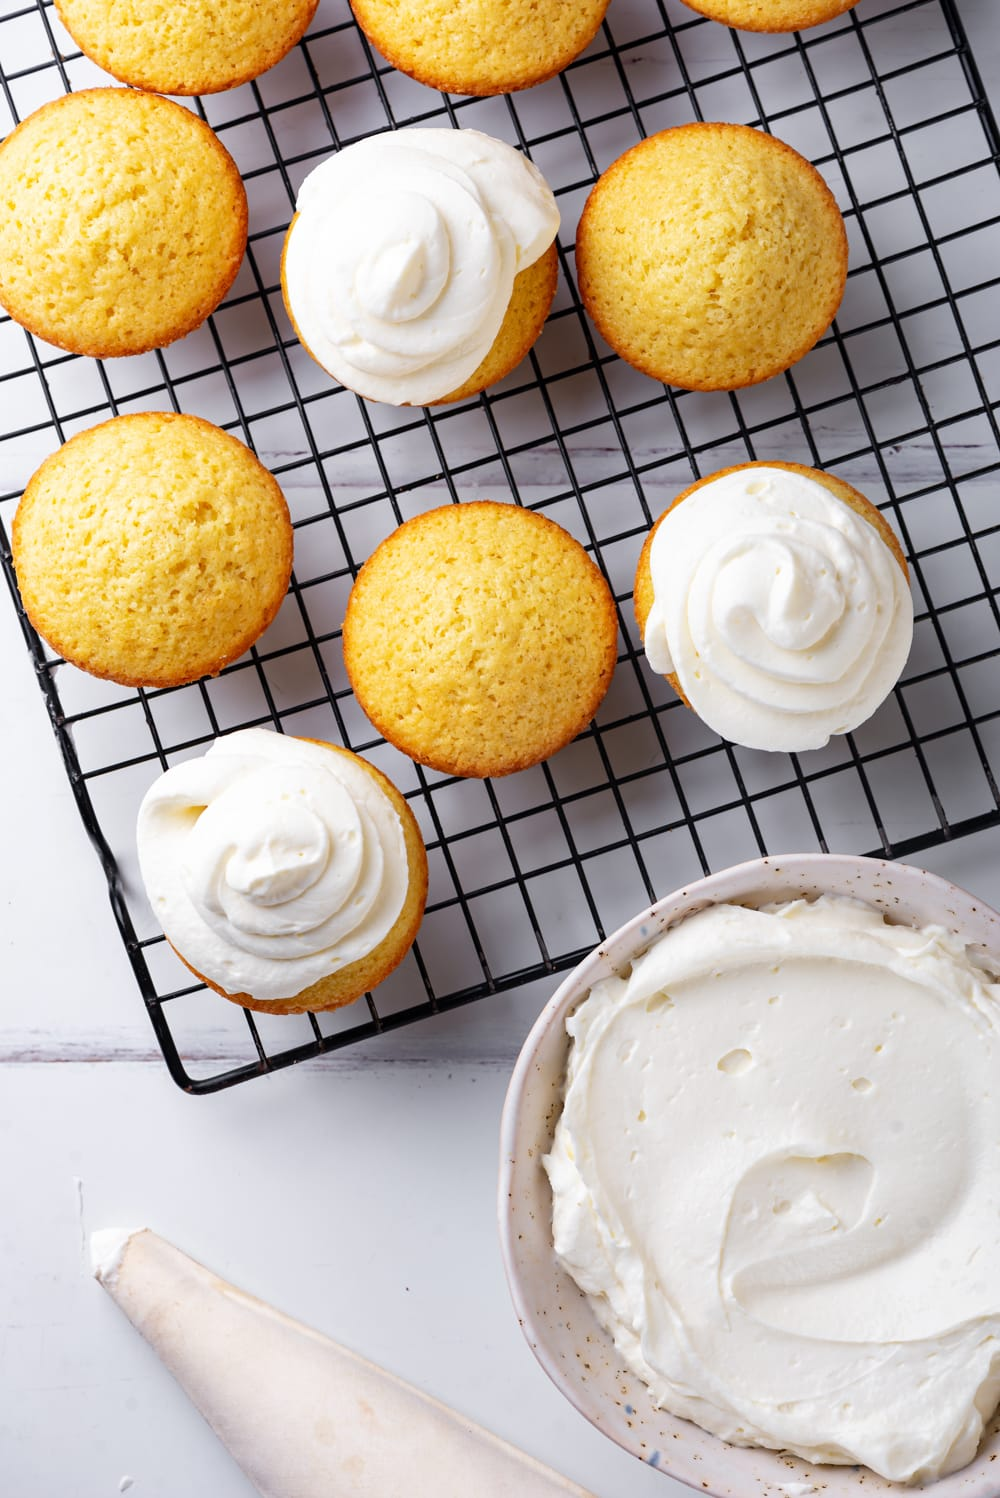 An overhead view of a bowl of keto cream cheese frosting with a frosting piper filled next to it. Behind the bowl is a black wire rack with three frosted keto vanilla cupcakes and four unfrosted. Everything is set on a white counter.